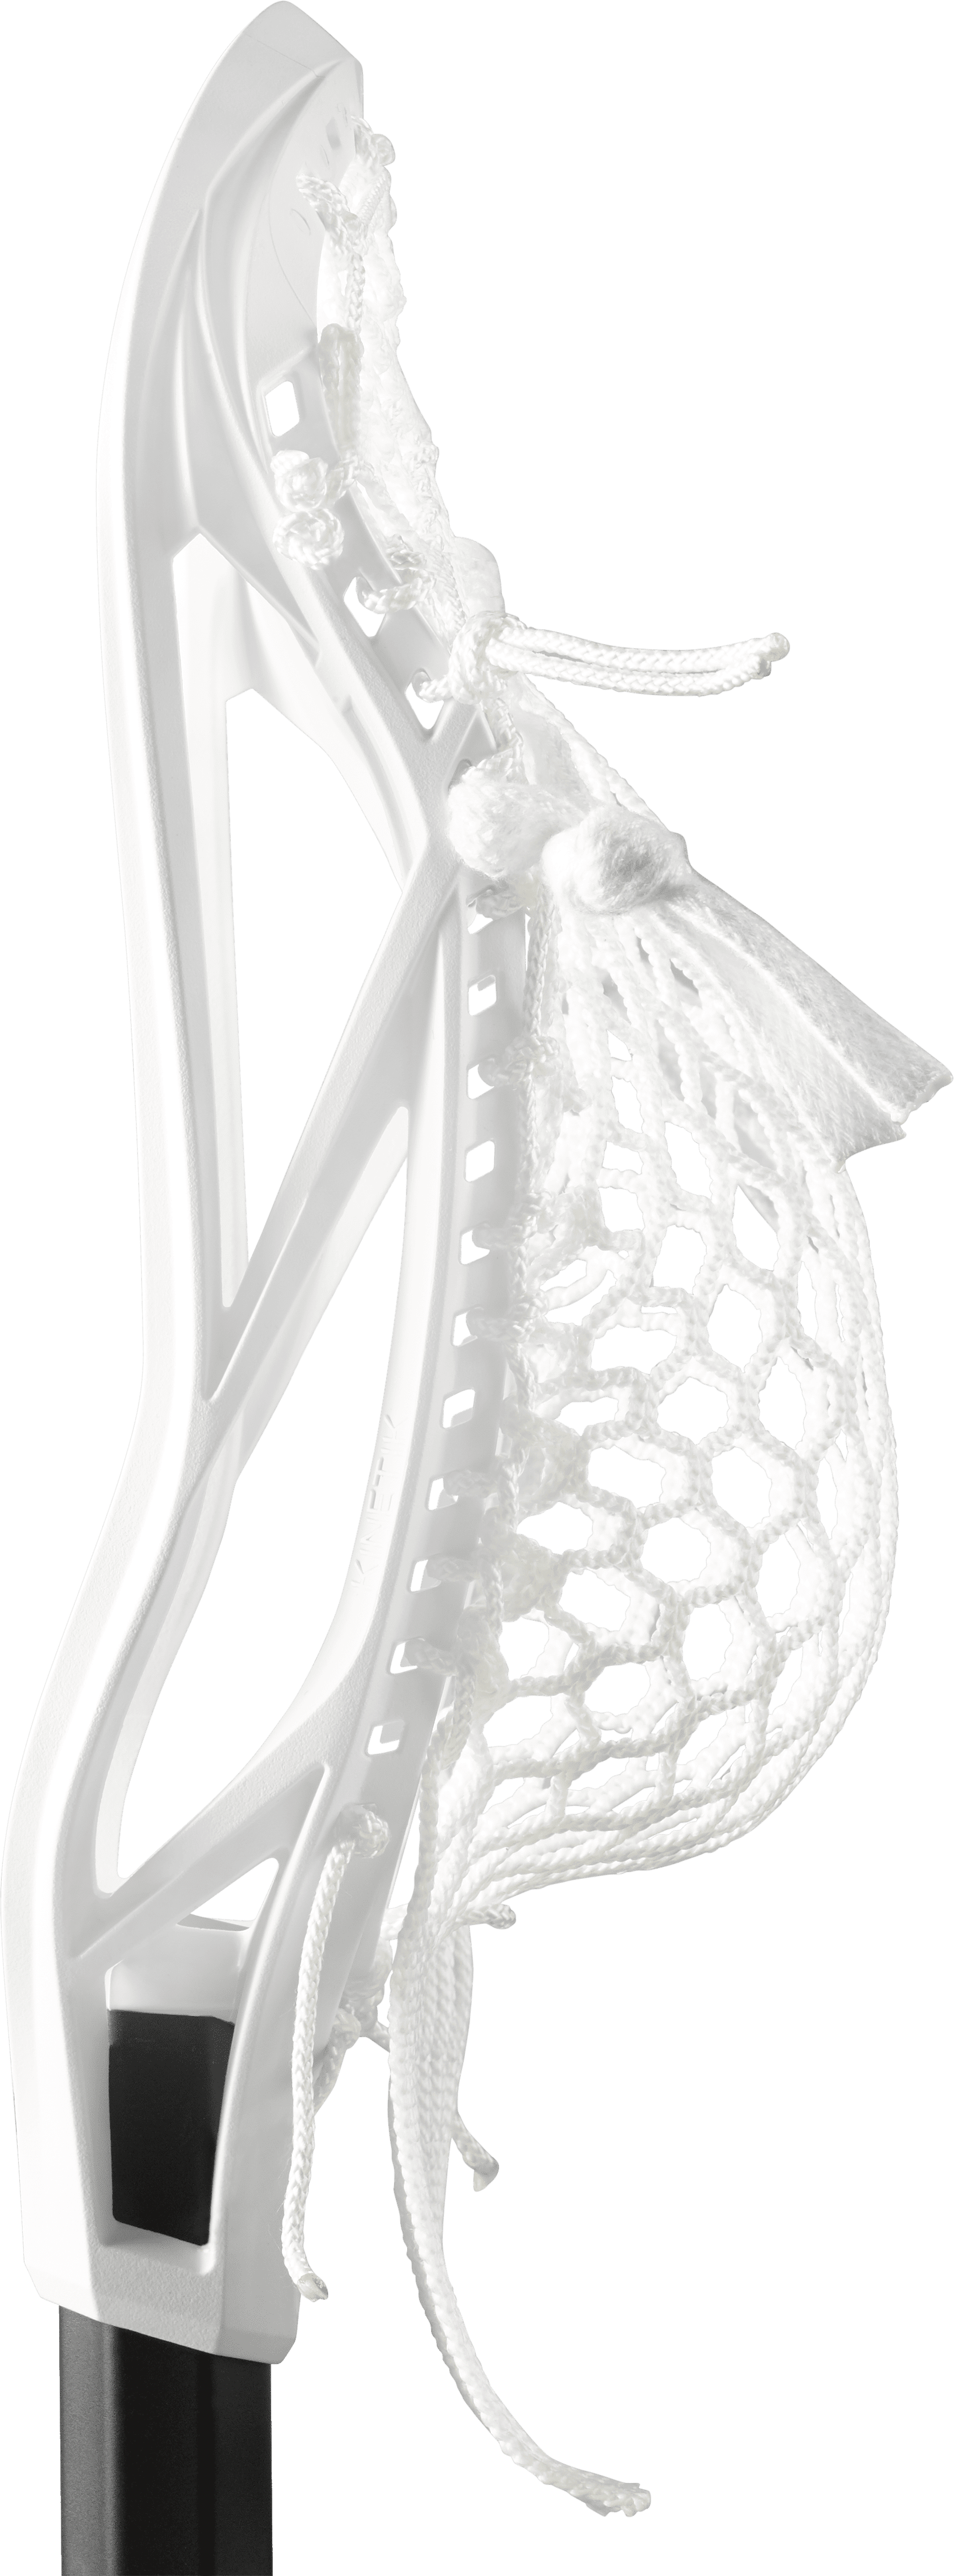 KINETIK_HEAD_WHITE_STRUNG_BALL_POSITION_3-1.png